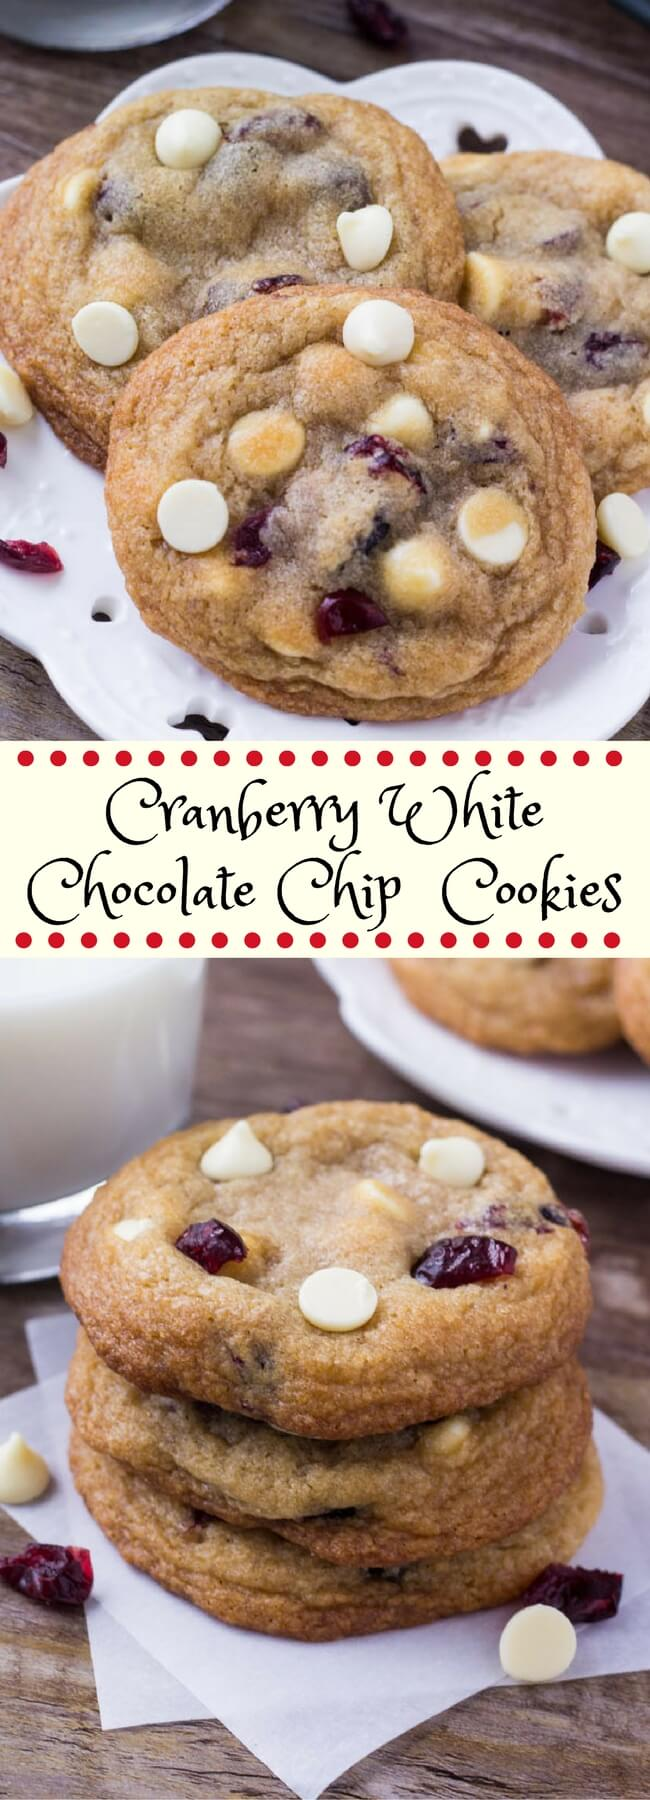 These cranberry white chocolate cookies are soft and chewy with slightly golden edges. The combination of white chocolate and dried cranberries is perfect for Christmas. #whitechocolatecranberry #cranberry #whitechocolatecranberrycookies #christmascookies